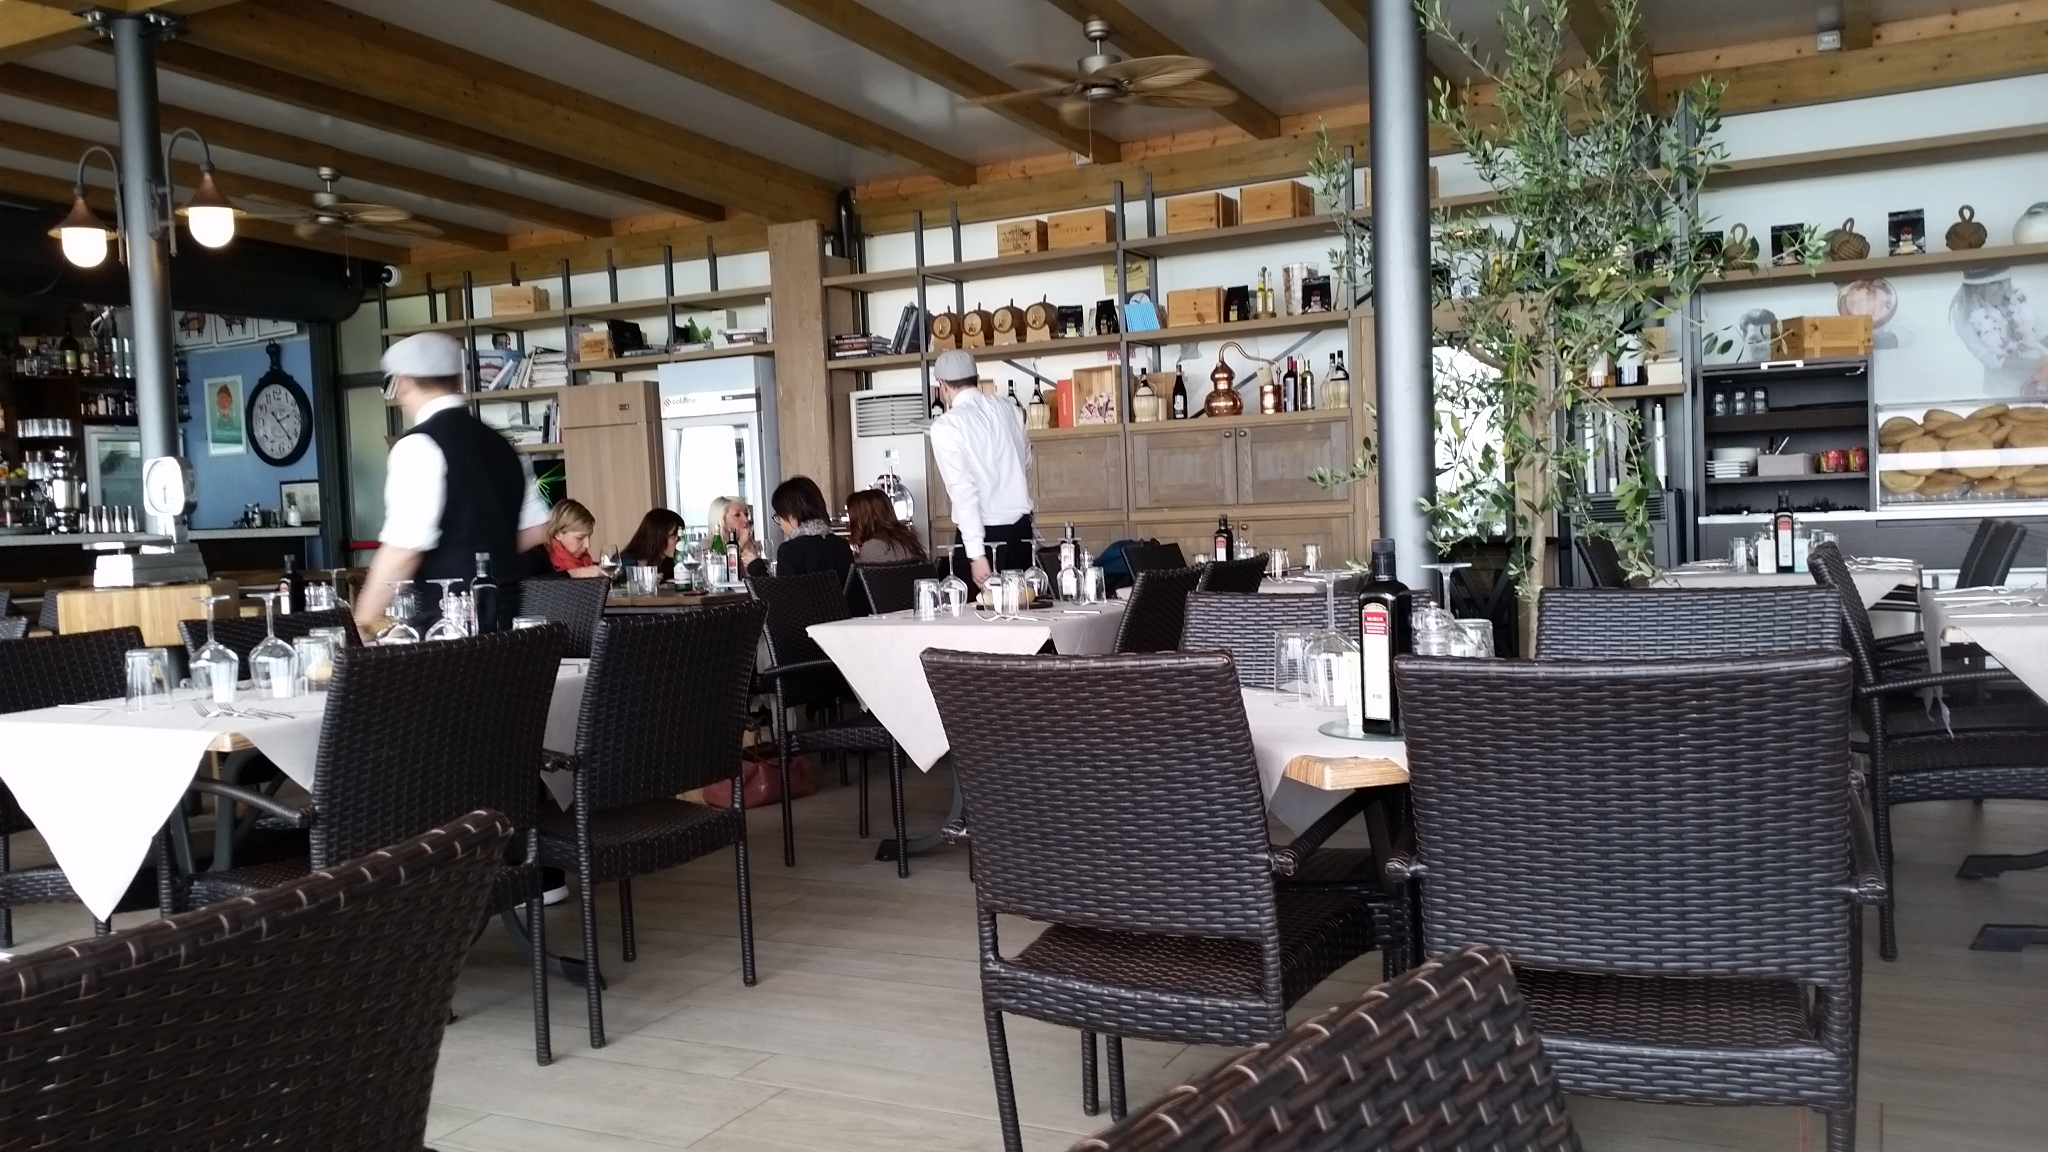 most restaurants in the pretty towns and villages in lake garda are quite traditional in their style so it was lovely to experience something a little